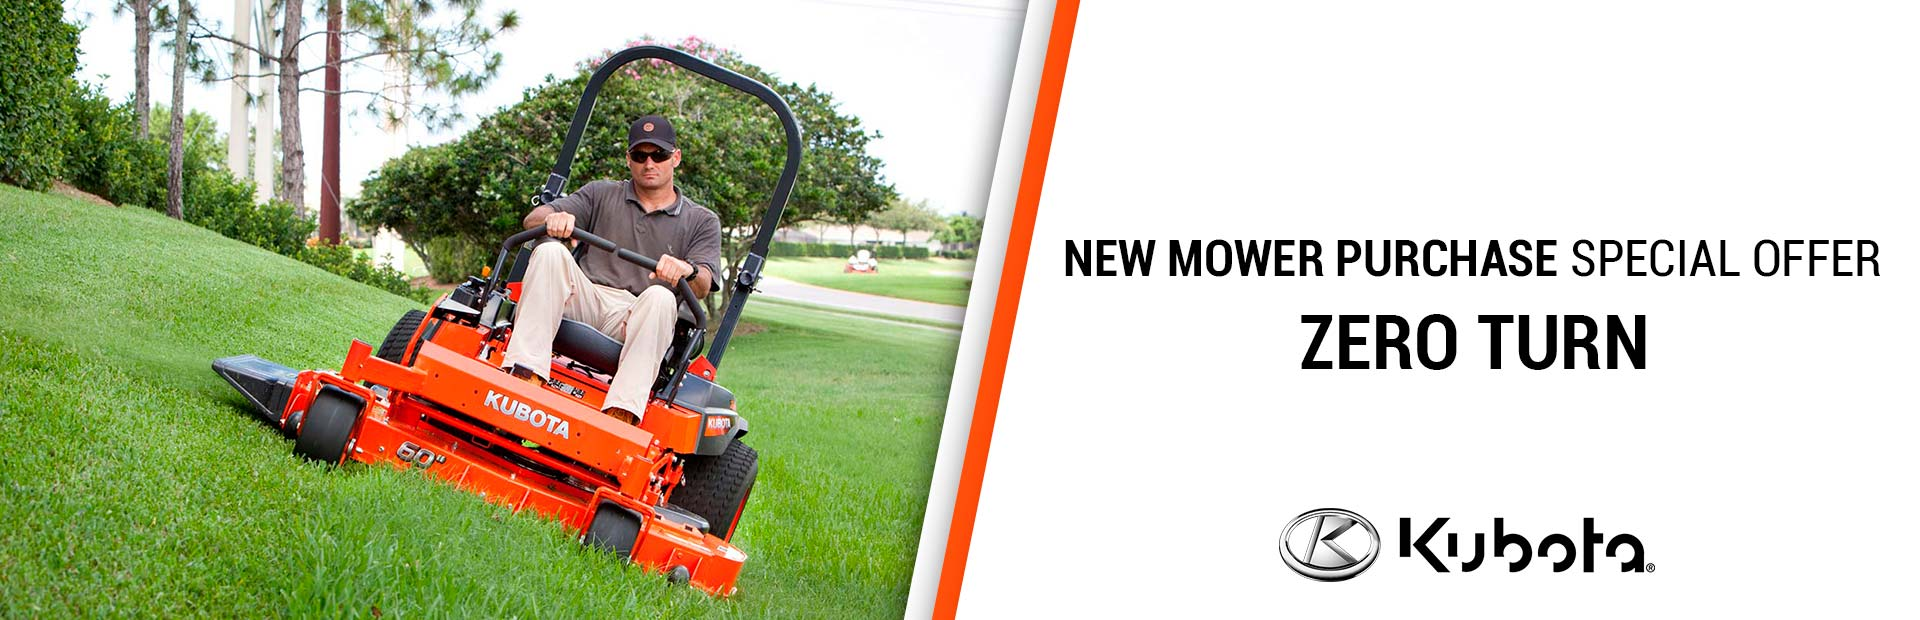 Kubota: NEW MOWER PURCHASE SPECIAL OFFERS-ZERO TURN